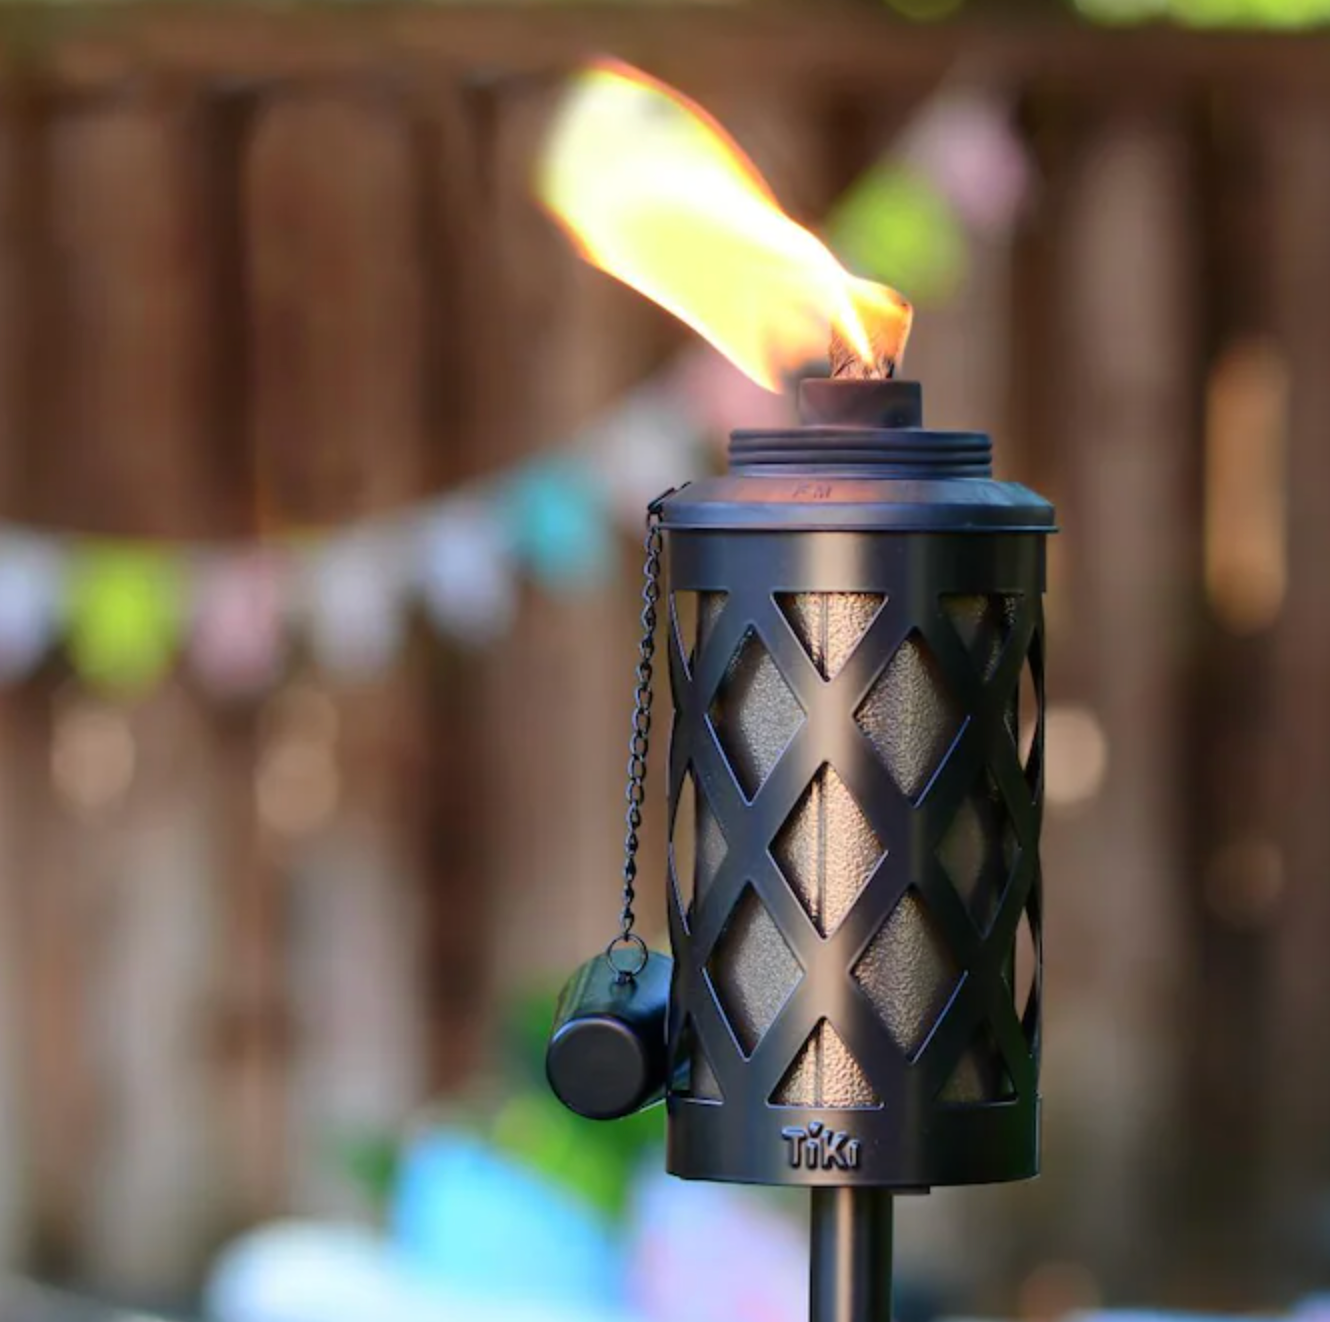 photo of the Tiki torch with citronella on fire